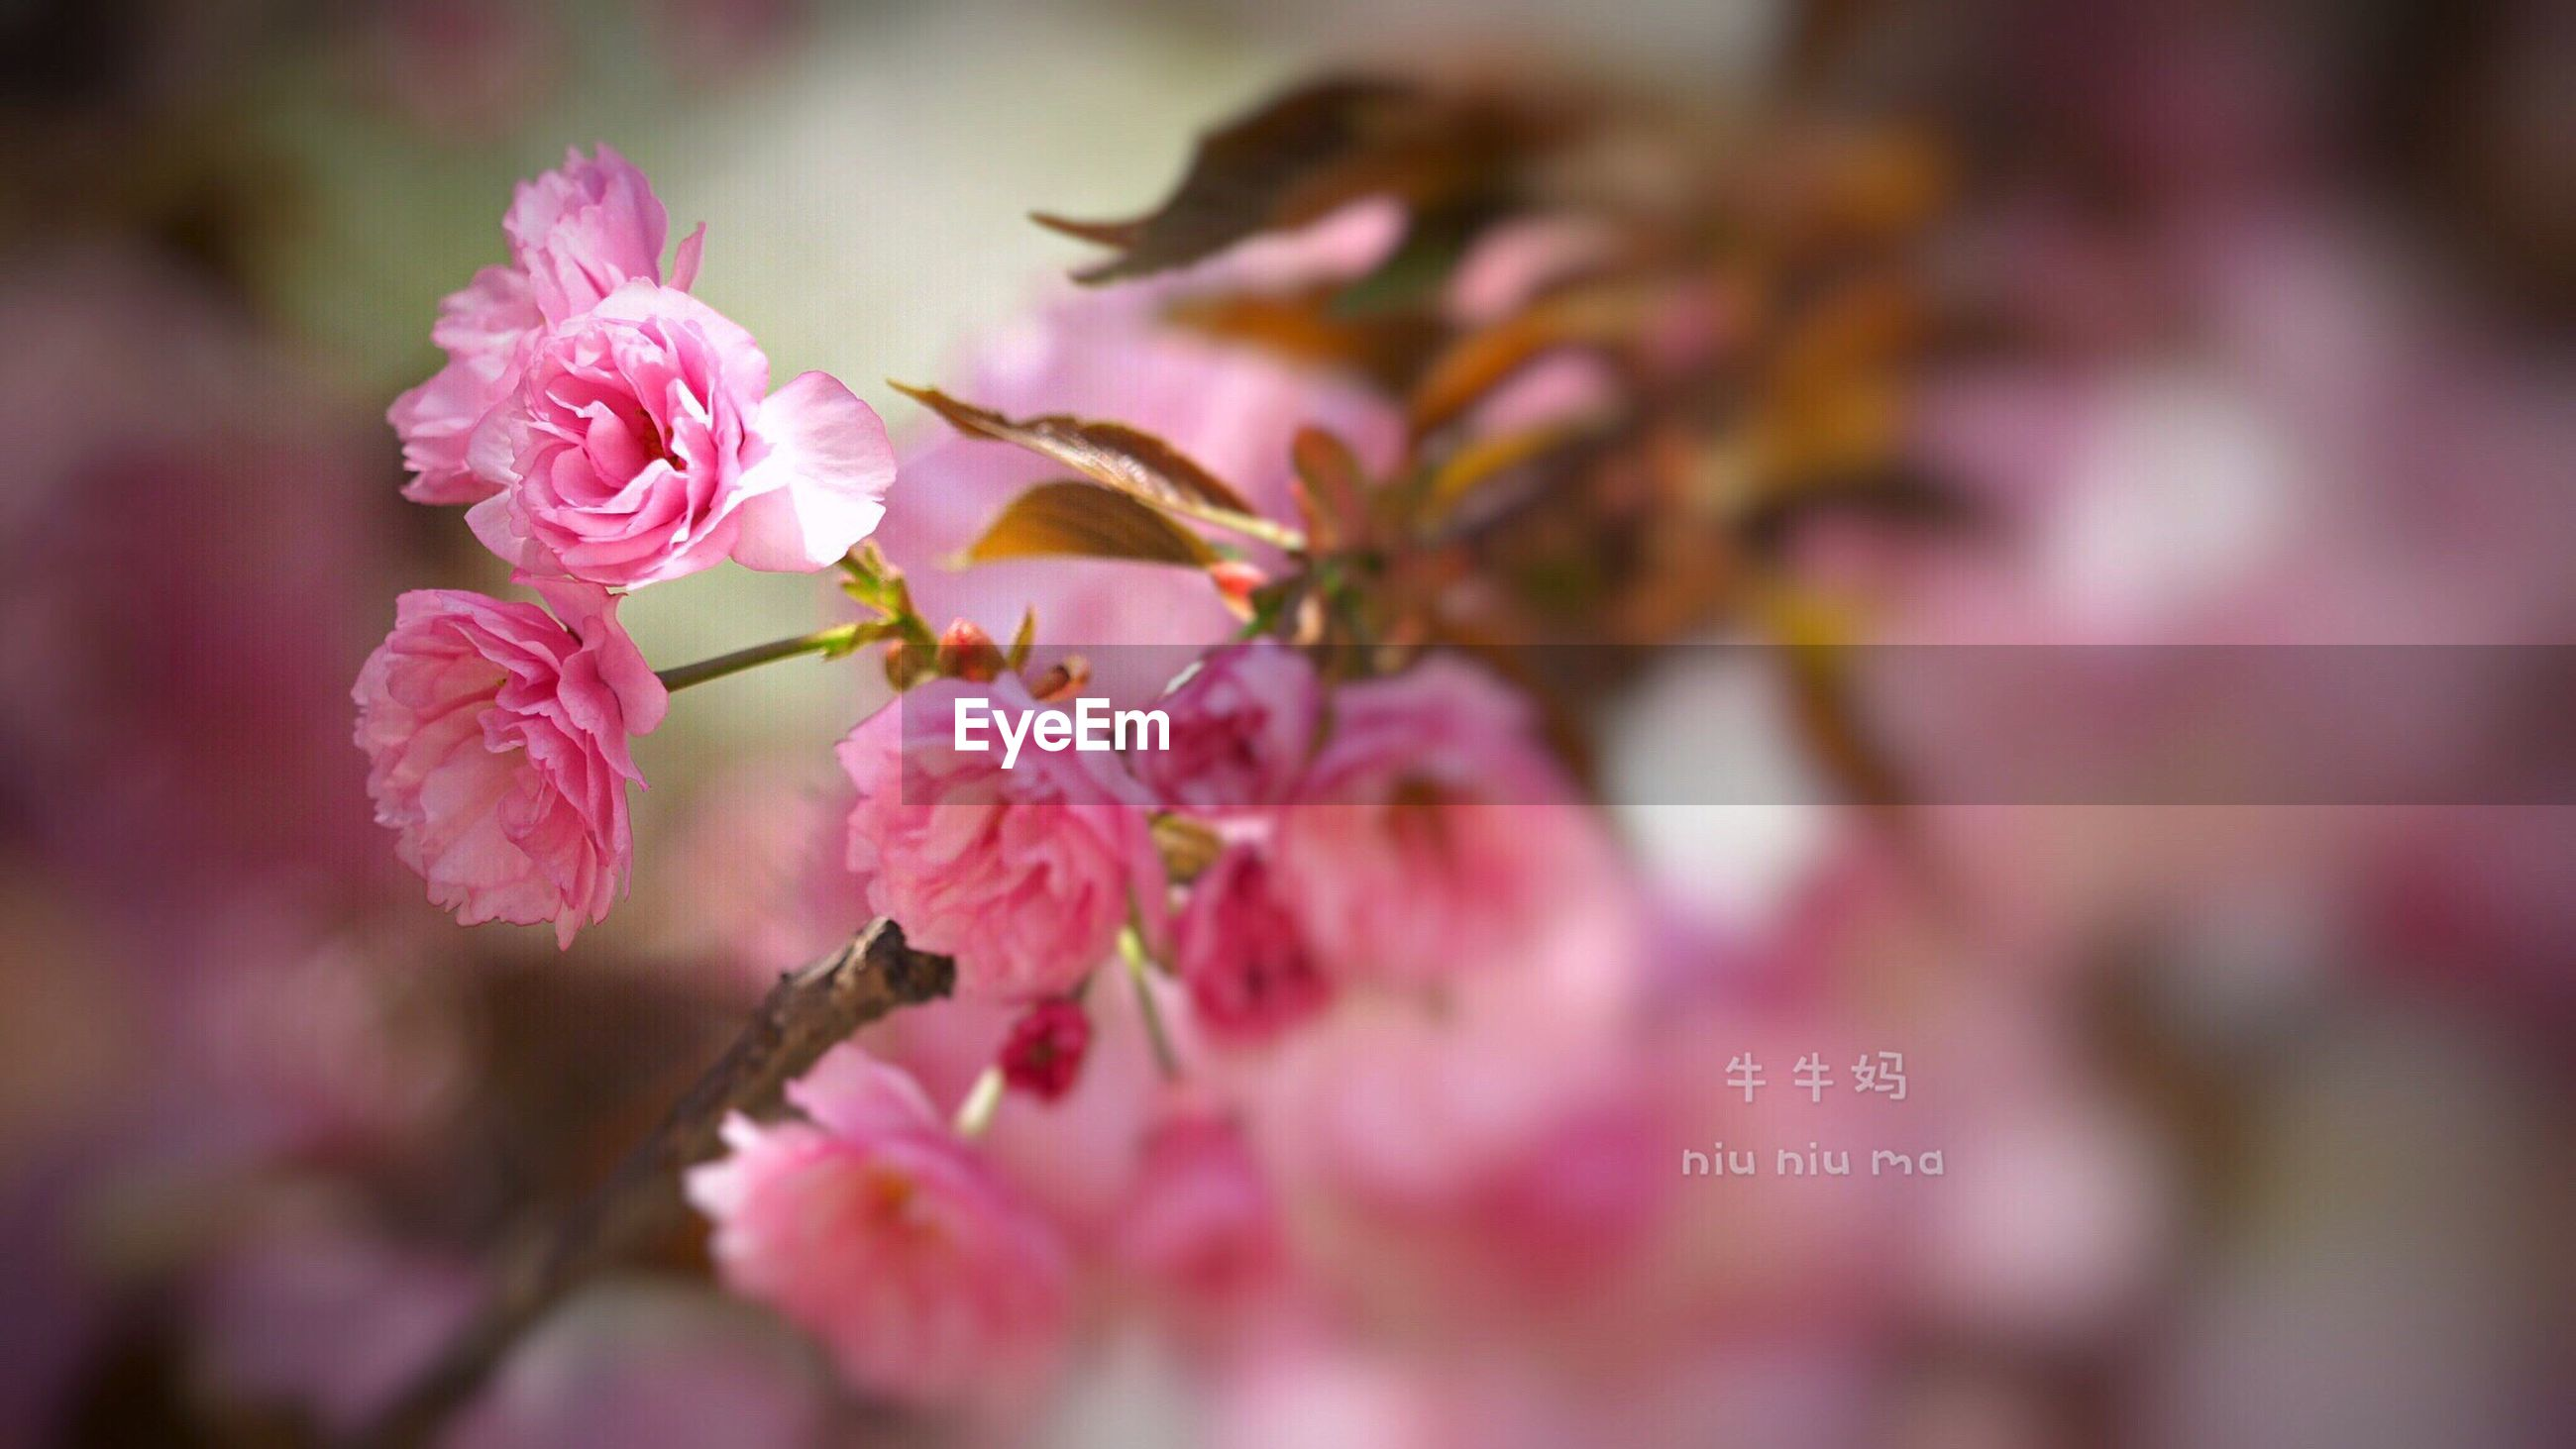 flower, pink color, fragility, freshness, nature, beauty in nature, growth, petal, close-up, plant, focus on foreground, no people, flower head, day, outdoors, plum blossom, rhododendron